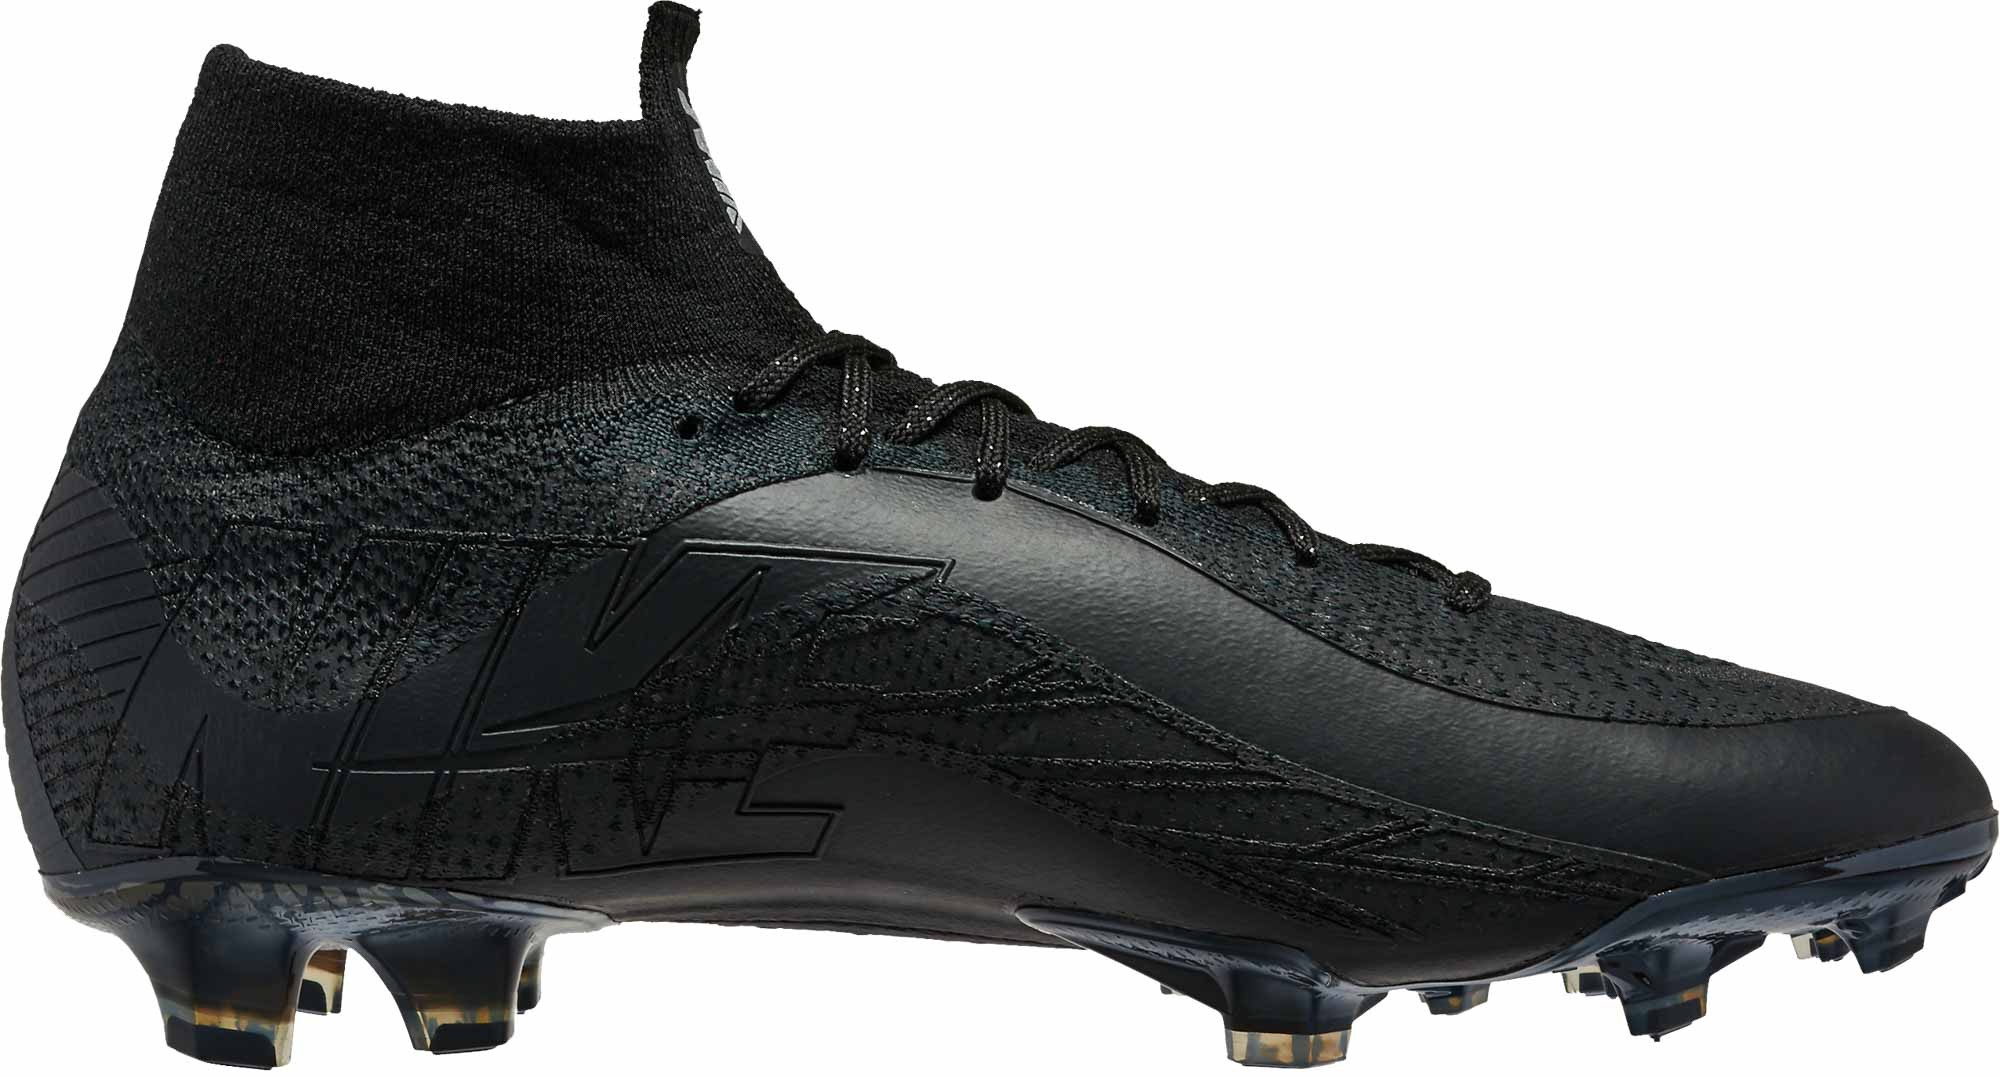 Nike Mercurial Superfly 6 Elite FG – WTM